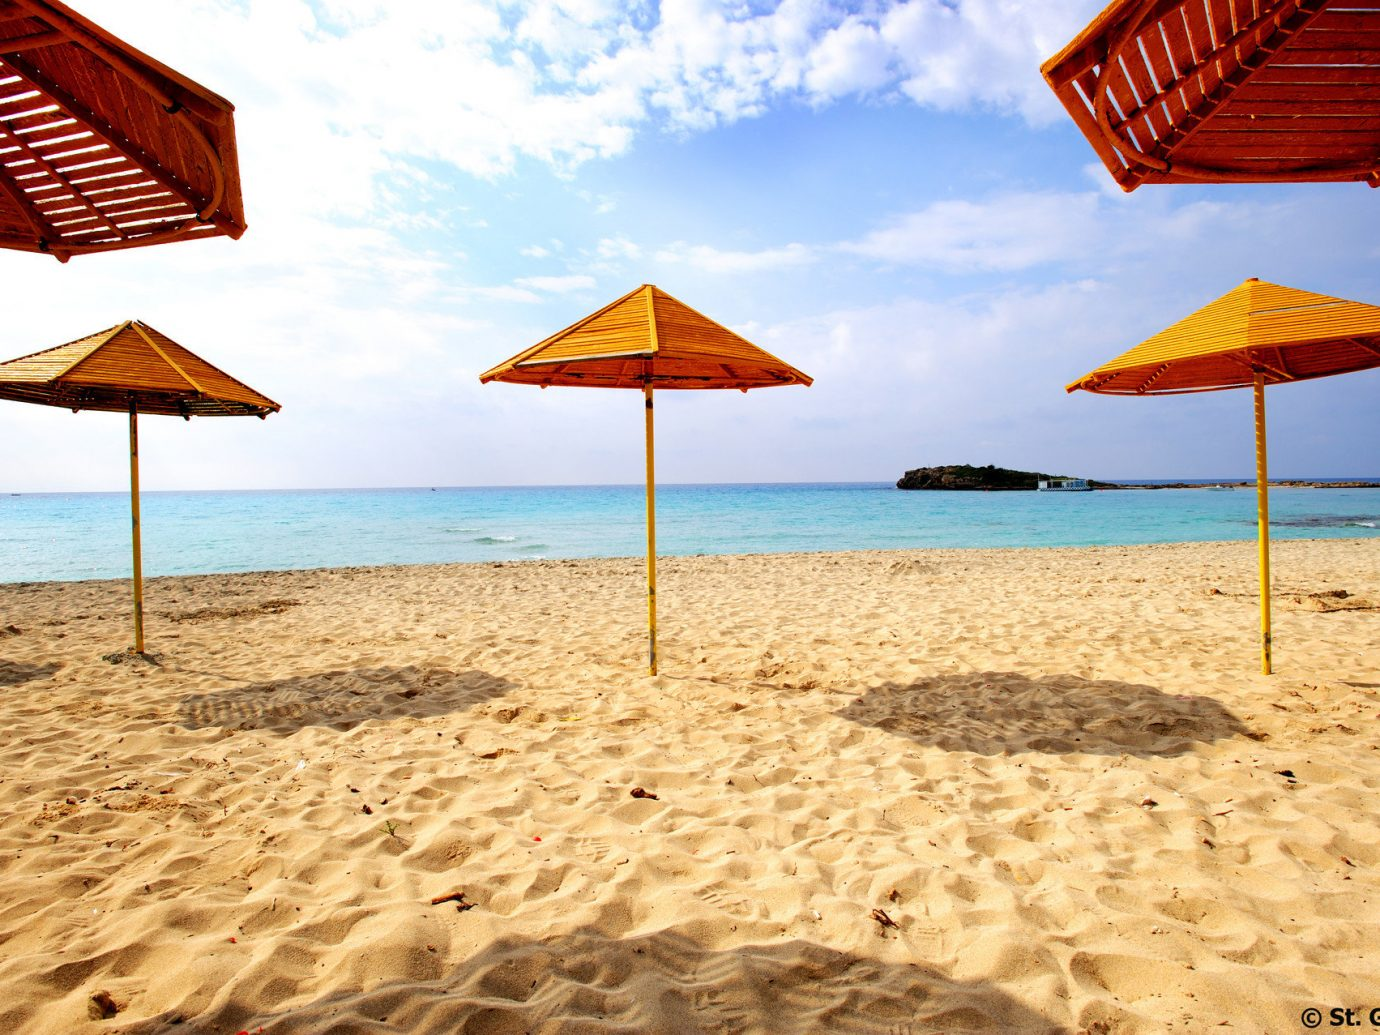 orange Travel Tips umbrella outdoor chair water Beach lawn shore body of water Sea Ocean Coast vacation lined sand set row line shade several swimming day